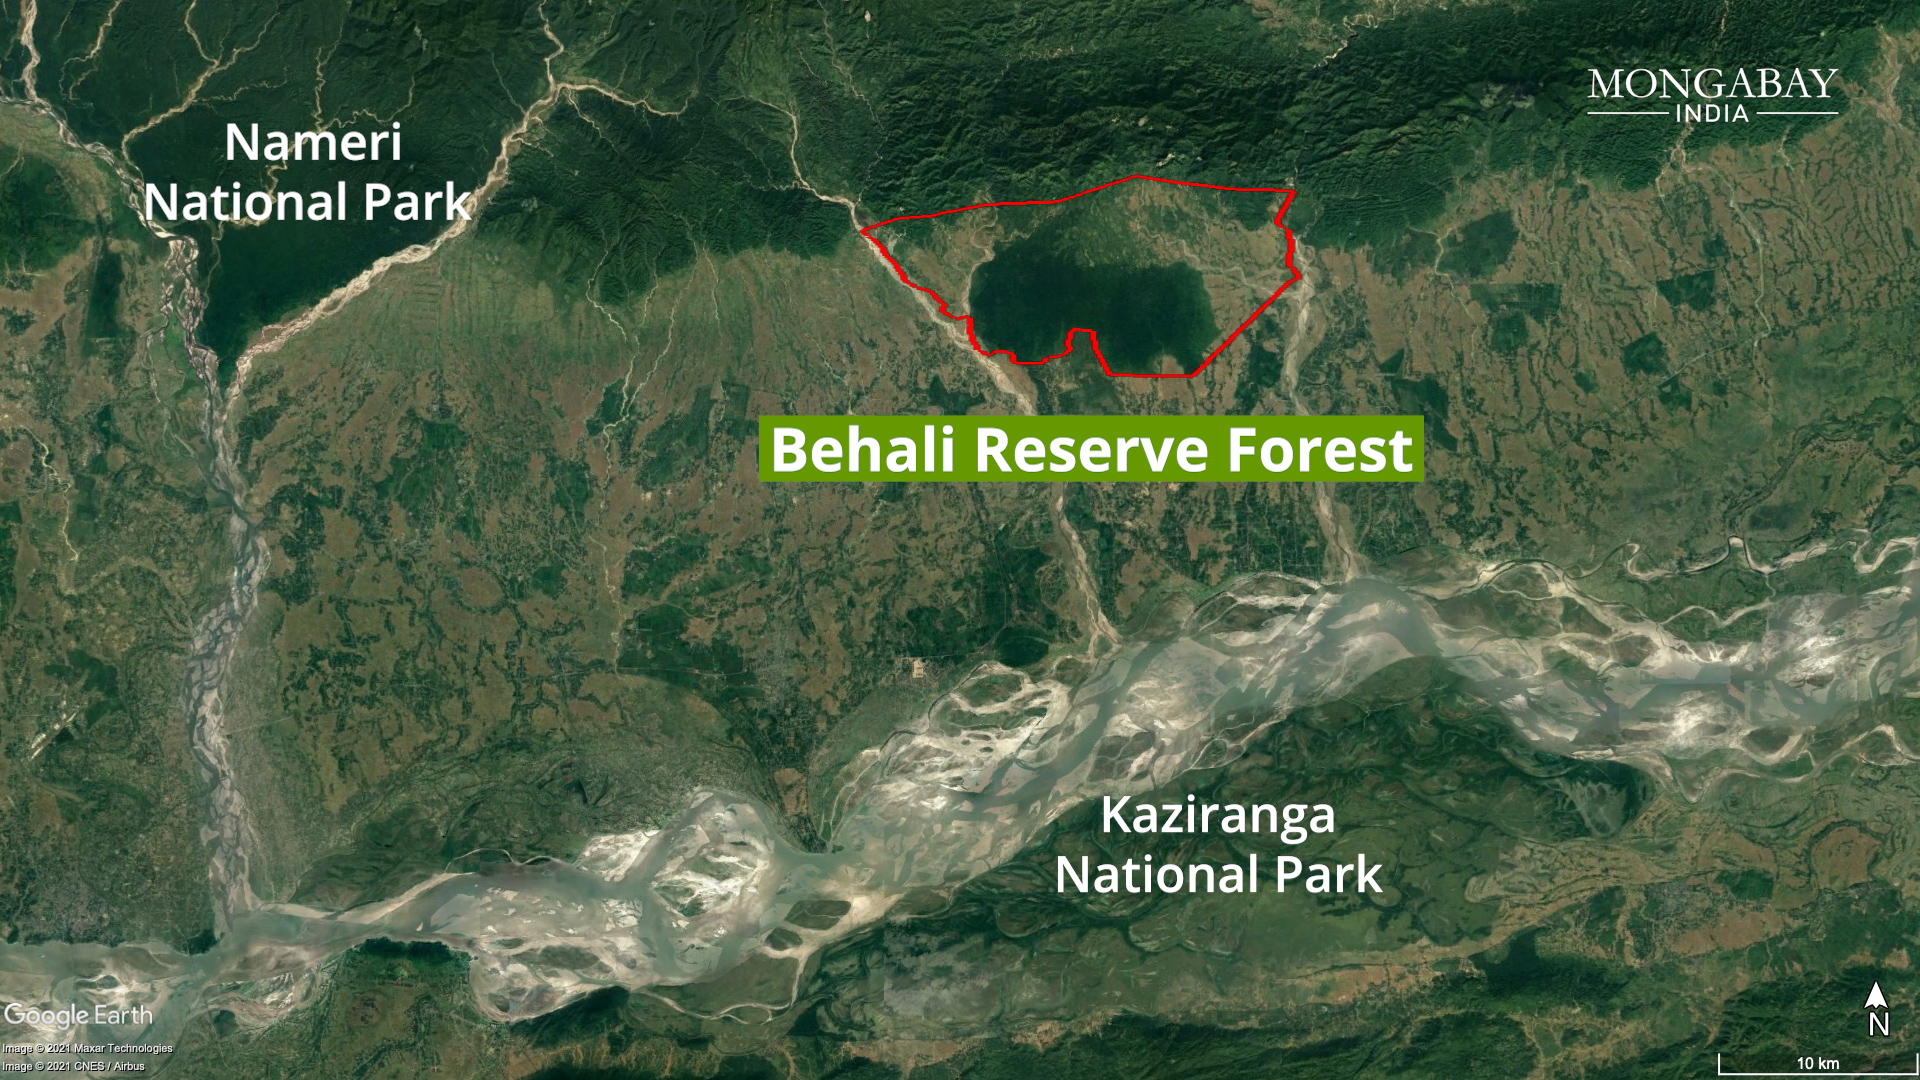 The Behali Reserve Forest on the Assam-Arunachal border shelters several species of flora and fauna and also acts as a passage for wildlife movement between protected areas. Base map from Google Earth, forest boundary from Sonitpur East Forest Division, Government of Assam.